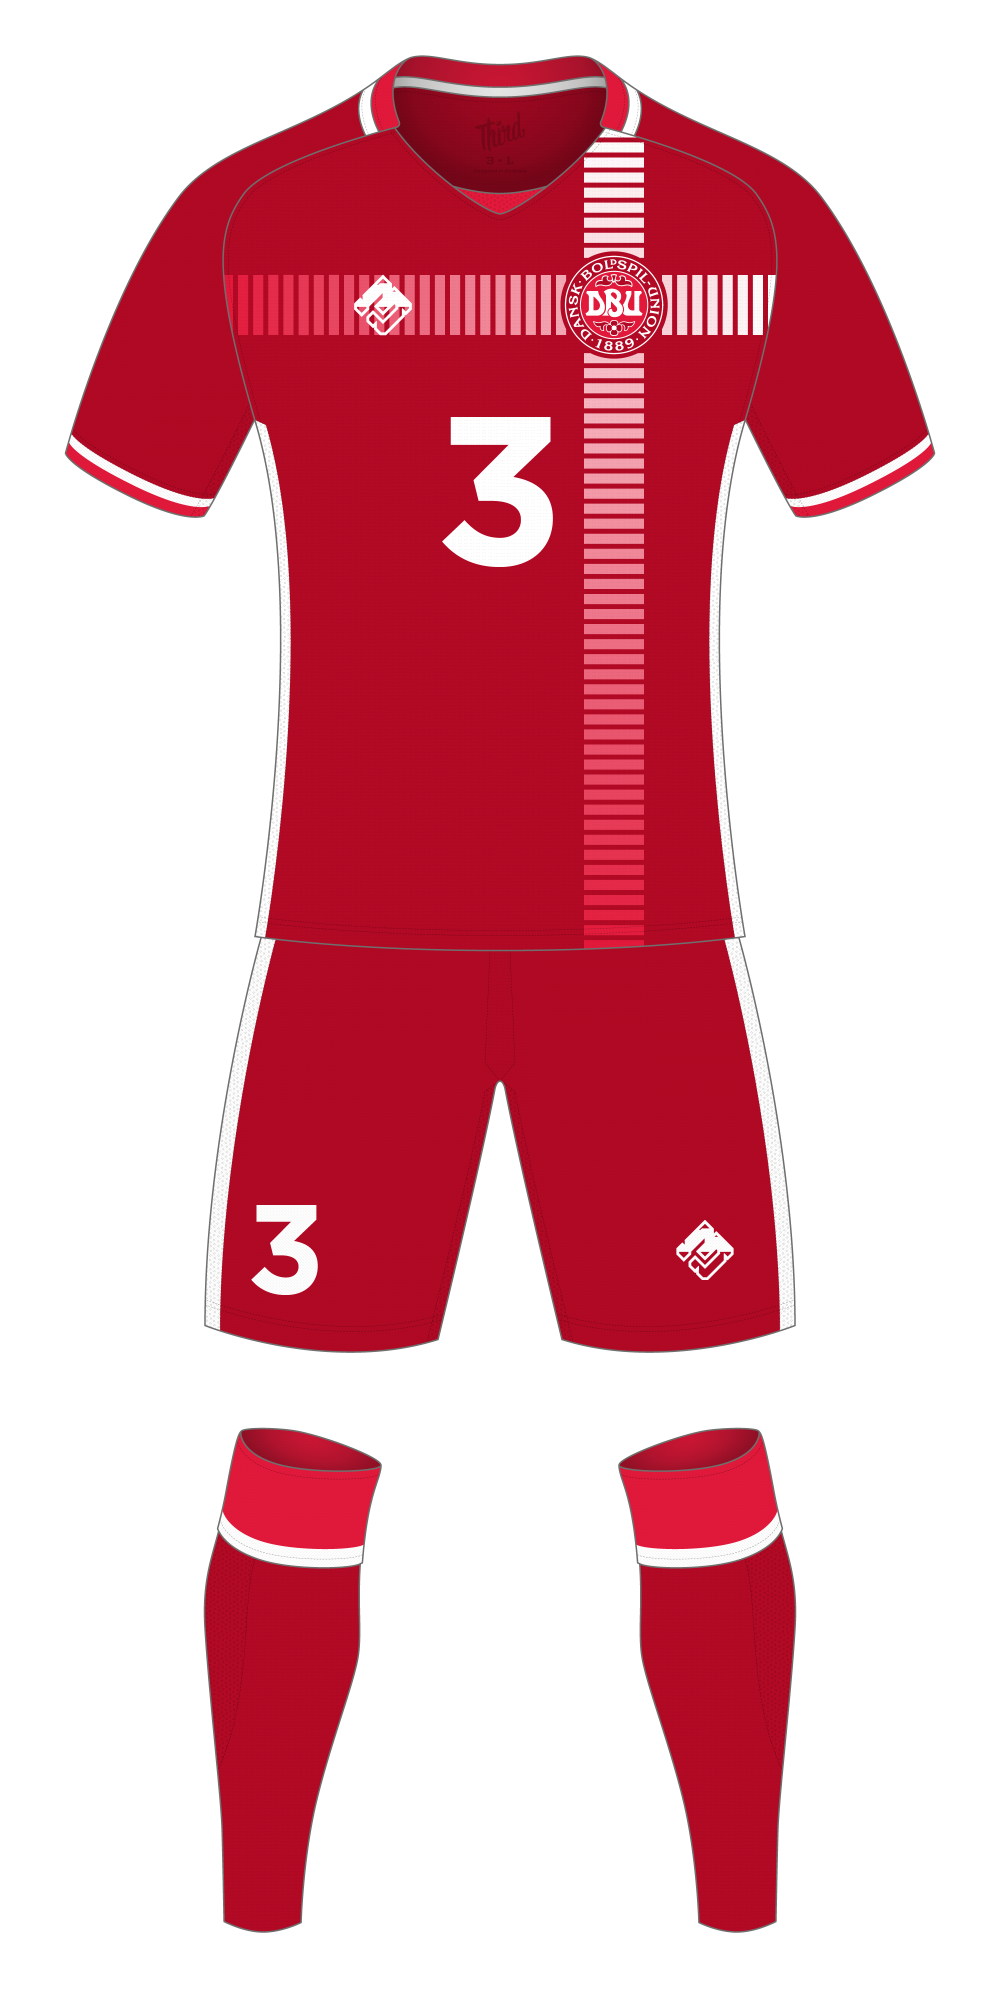 Denmark World Cup 2018 concept